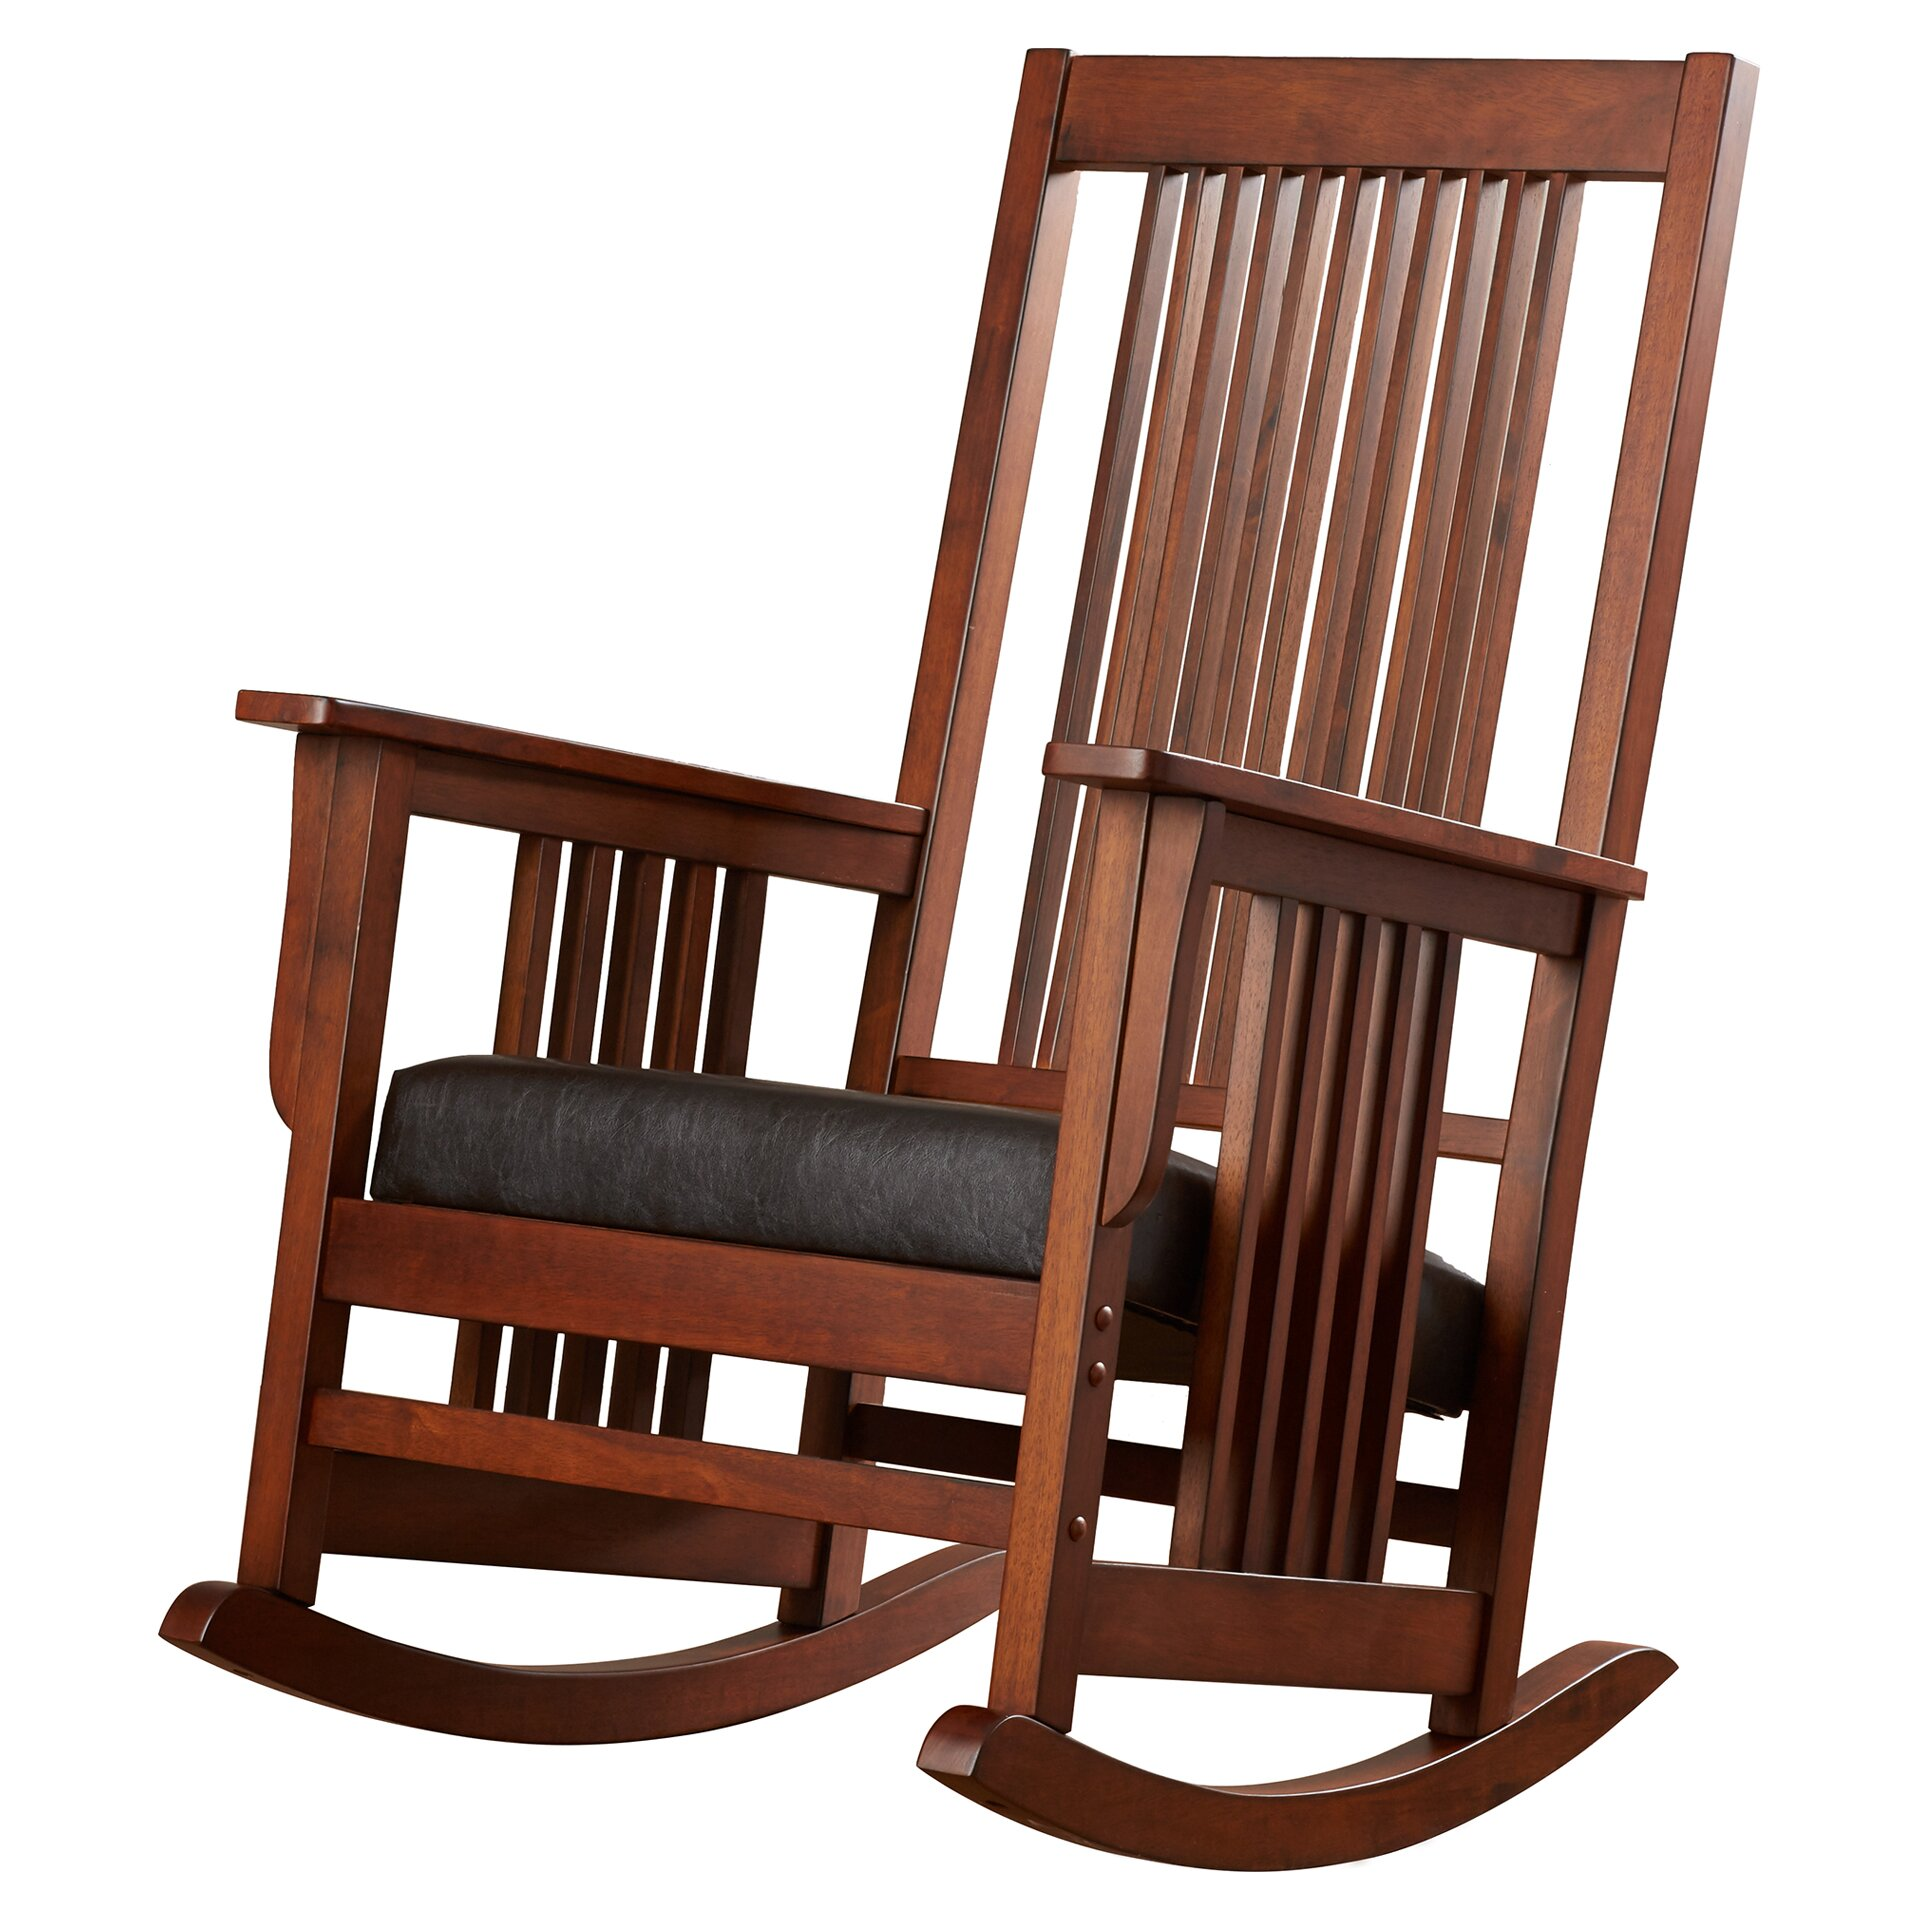 darby home co matilda rocking chair reviews wayfair. Black Bedroom Furniture Sets. Home Design Ideas